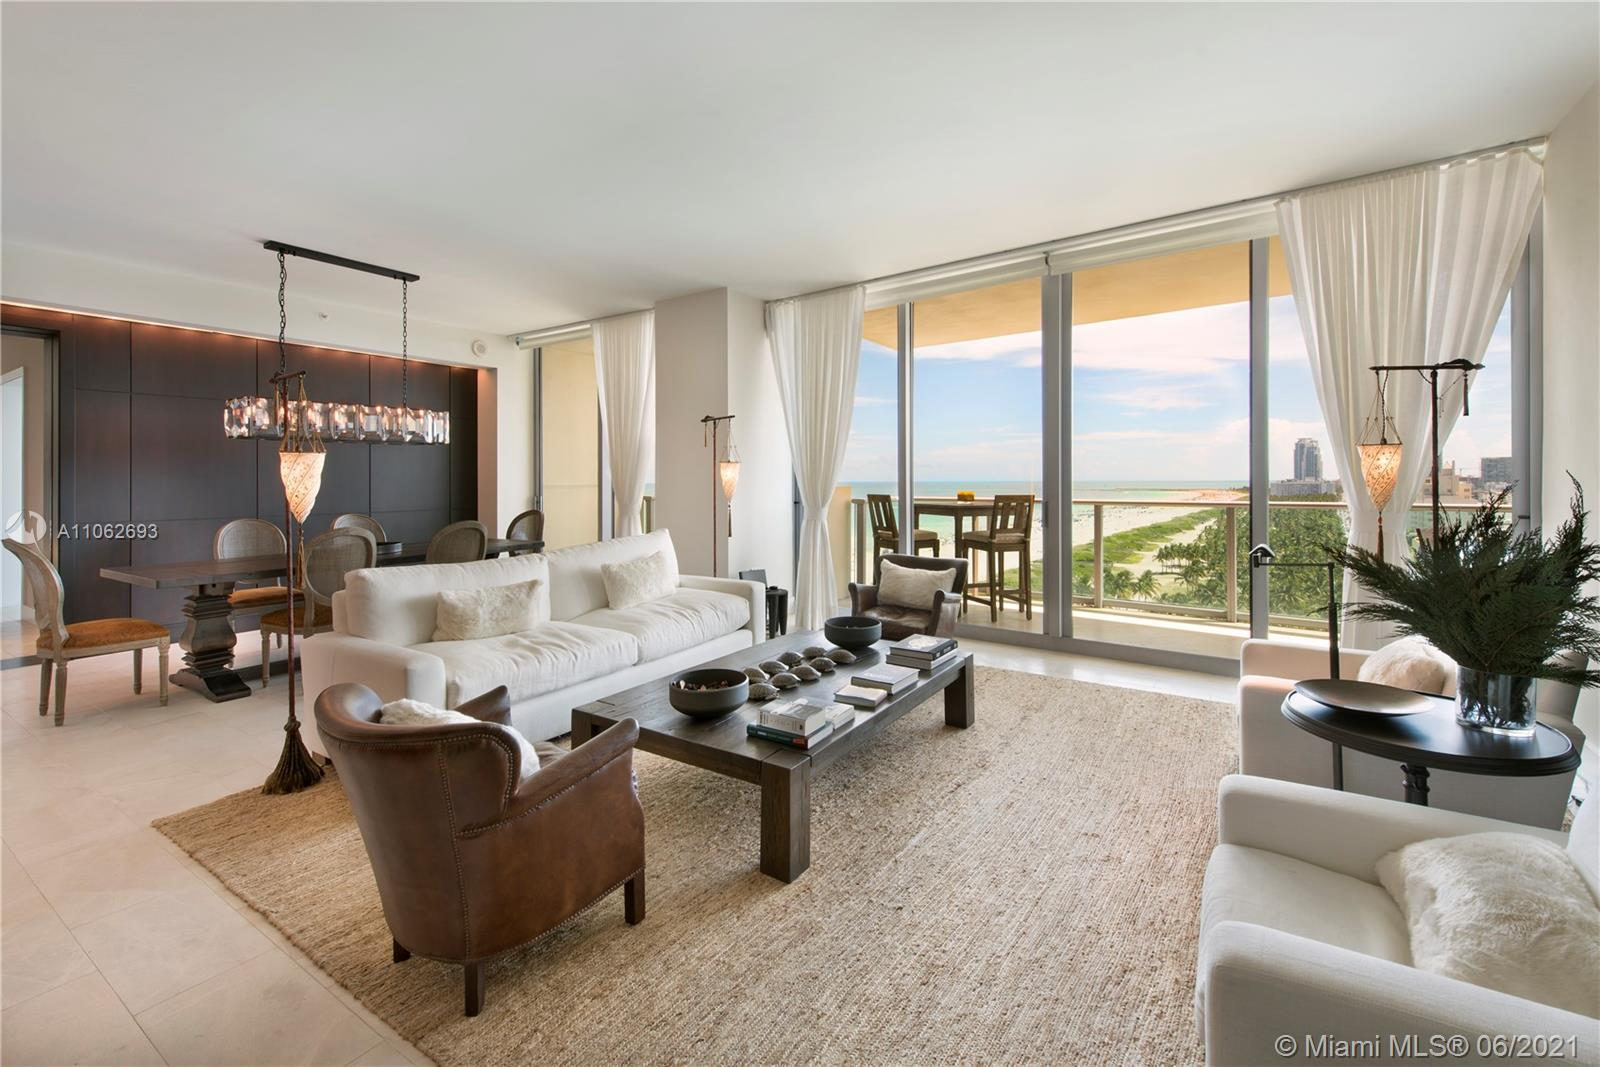 Exclusivity & grandeur calls at iconic Il Villaggio located in the Arts & Entertainment District on Ocean Drive. This combined floorplan is comprised of 4 bdrms + office, 4.5 baths & over 3,000 sf only available once before, this superior home offers a private elevator which ushers you the best views in SoBe.  Enjoy 6 terraces to overlook Lummus Park & Ocean Drive or stare out at the city lights of the Downtown Miami Skyline & the beauty of Atlantic Ocean. Other details include 10 ft. ceilings, open kitchen, wet bar & the ability of closing off part of the residence to create total privacy for the master bedroom suite from the guest bedrooms. The residence is equally perfect for quiet moments as it is for entertaining.  Il Villaggio defines full service luxury condominium living.